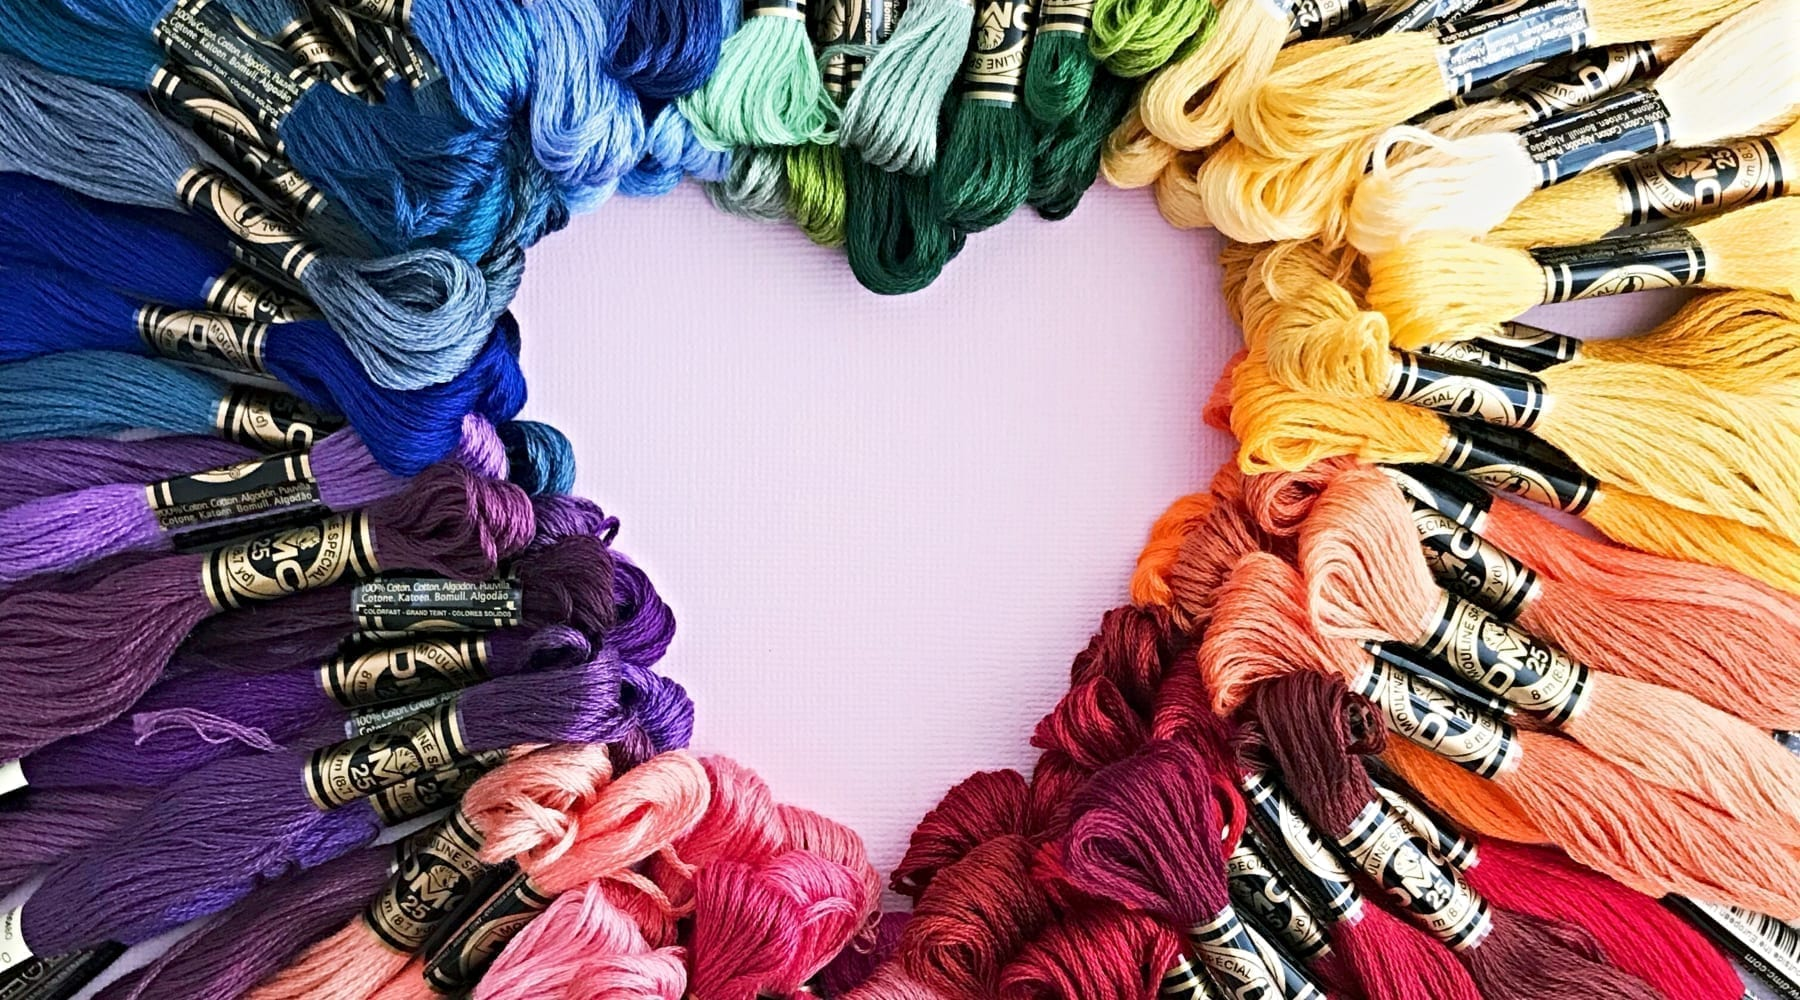 The 1 Ingredient That Will Knit Our Fraying Nation Together